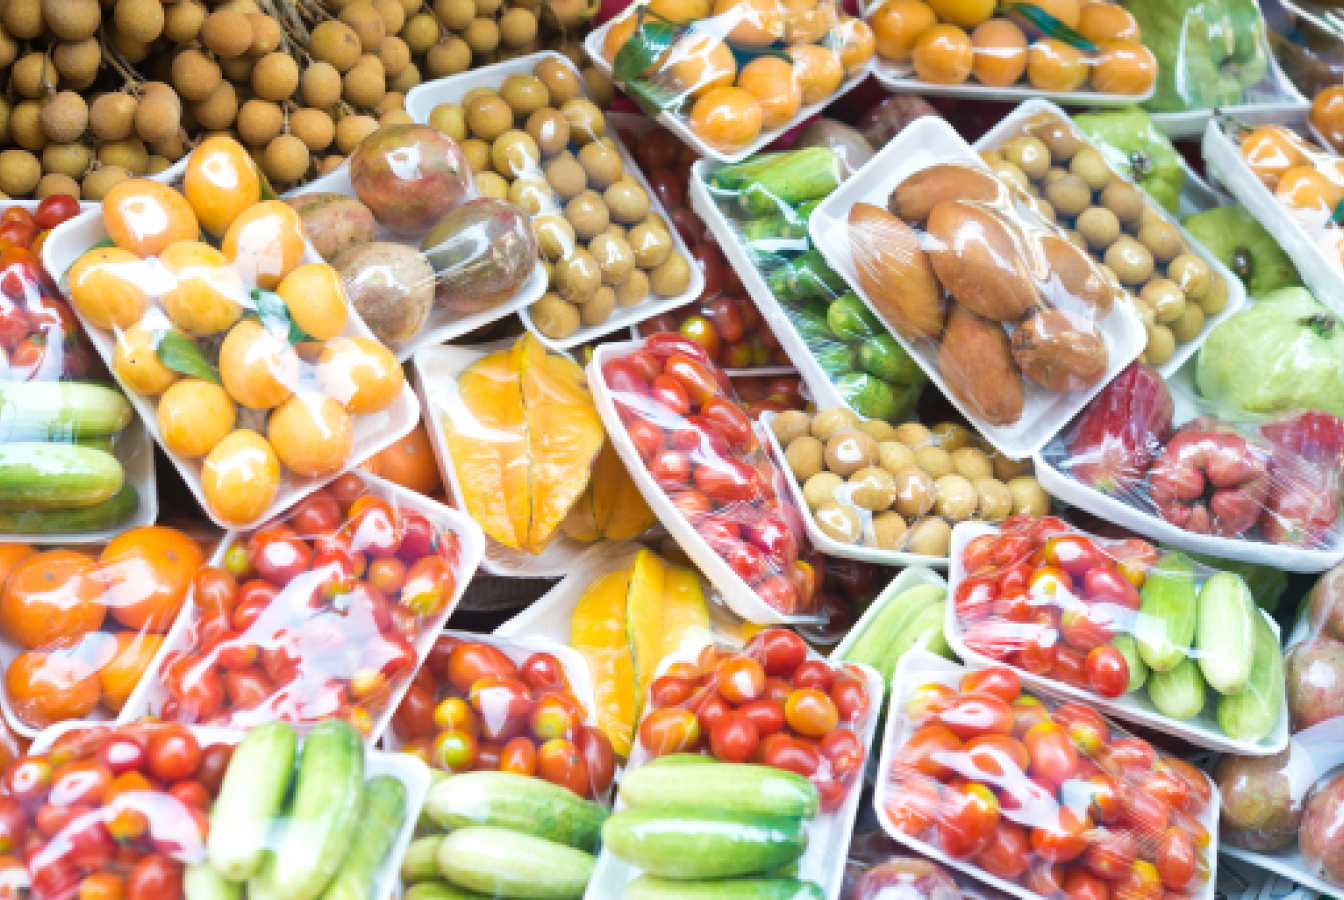 Plastic-wrapped fruits and vegetables at a grocery store.